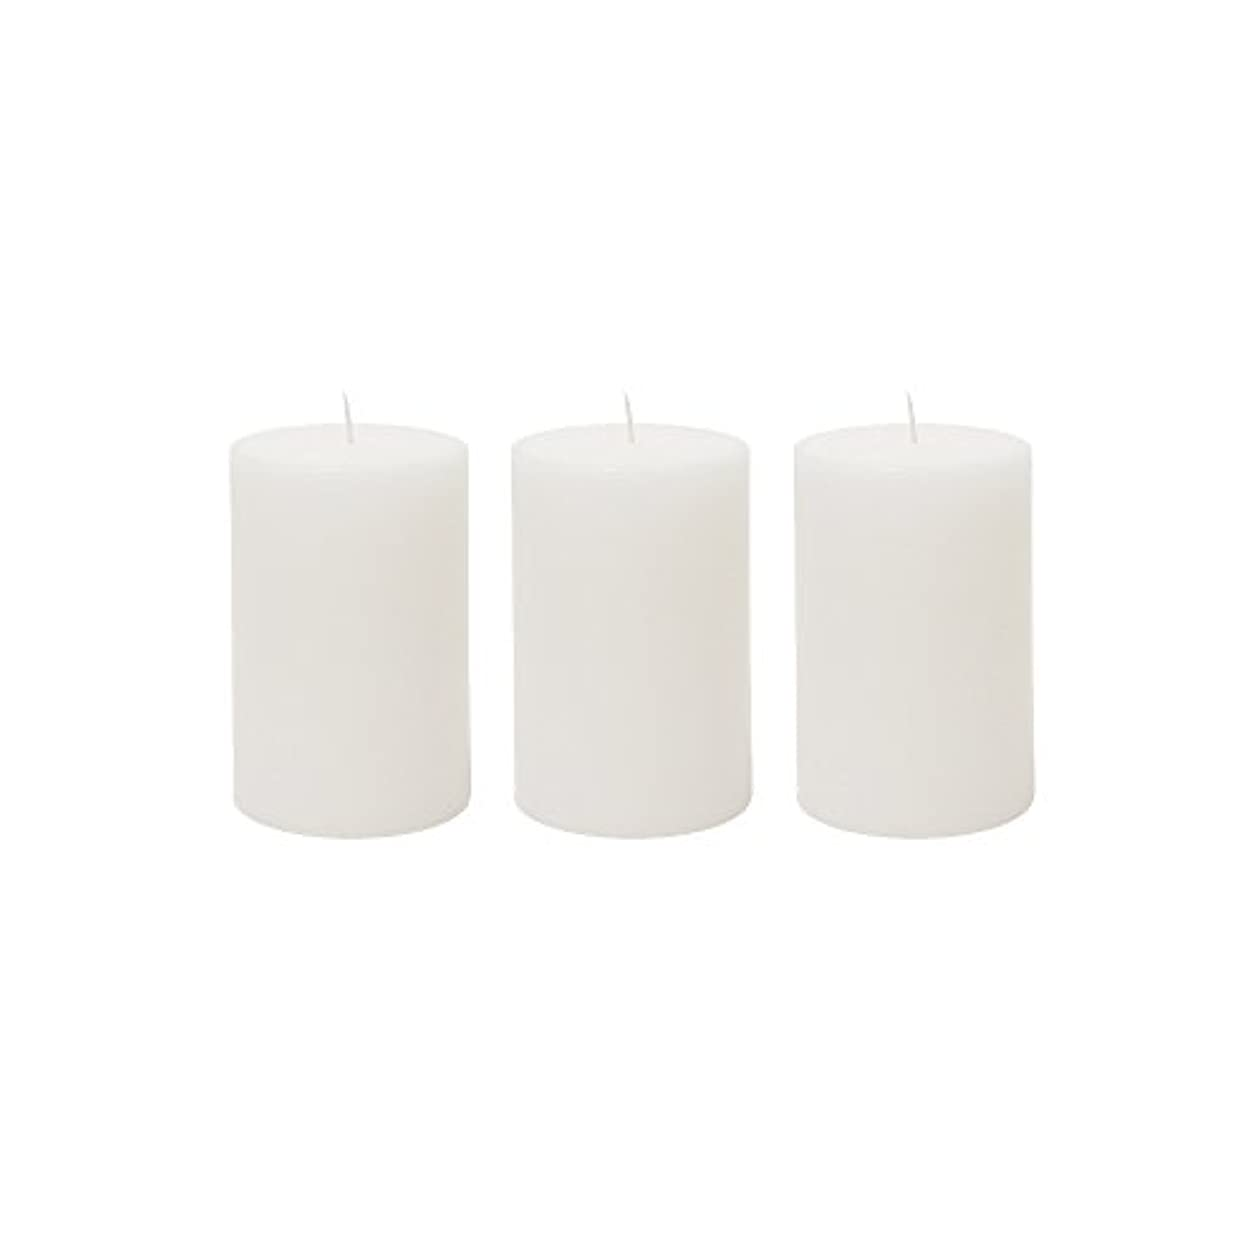 (3, 5.1cm x 7.6cm Round) - Mega Candles 3 pcs Unscented White Round Pillar Candle Hand Poured Premium Wax Candles...